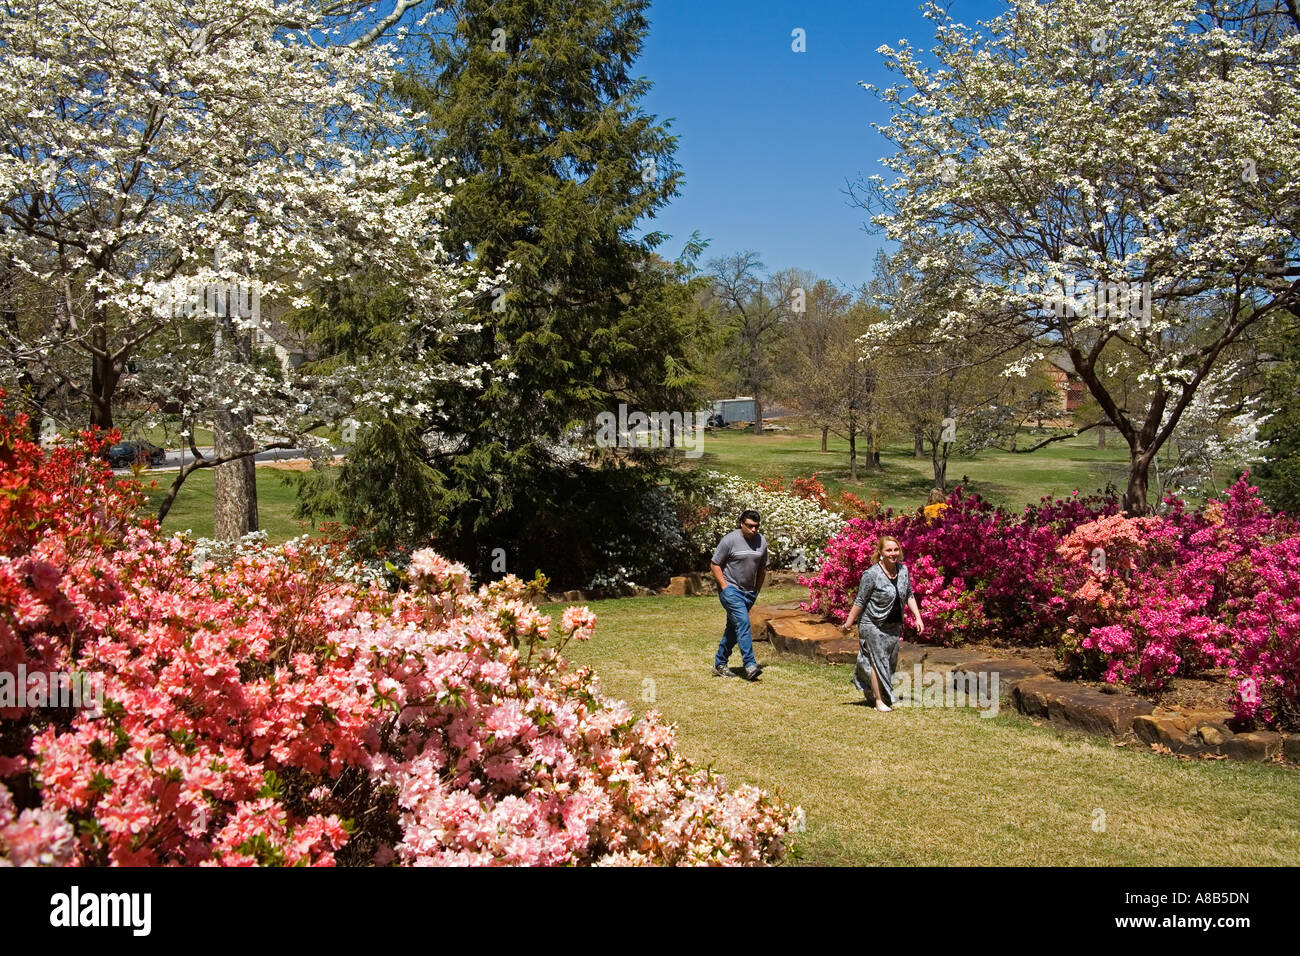 Garden Center Park Tulsa Oklahoma Stock Photos & Garden Center Park ...